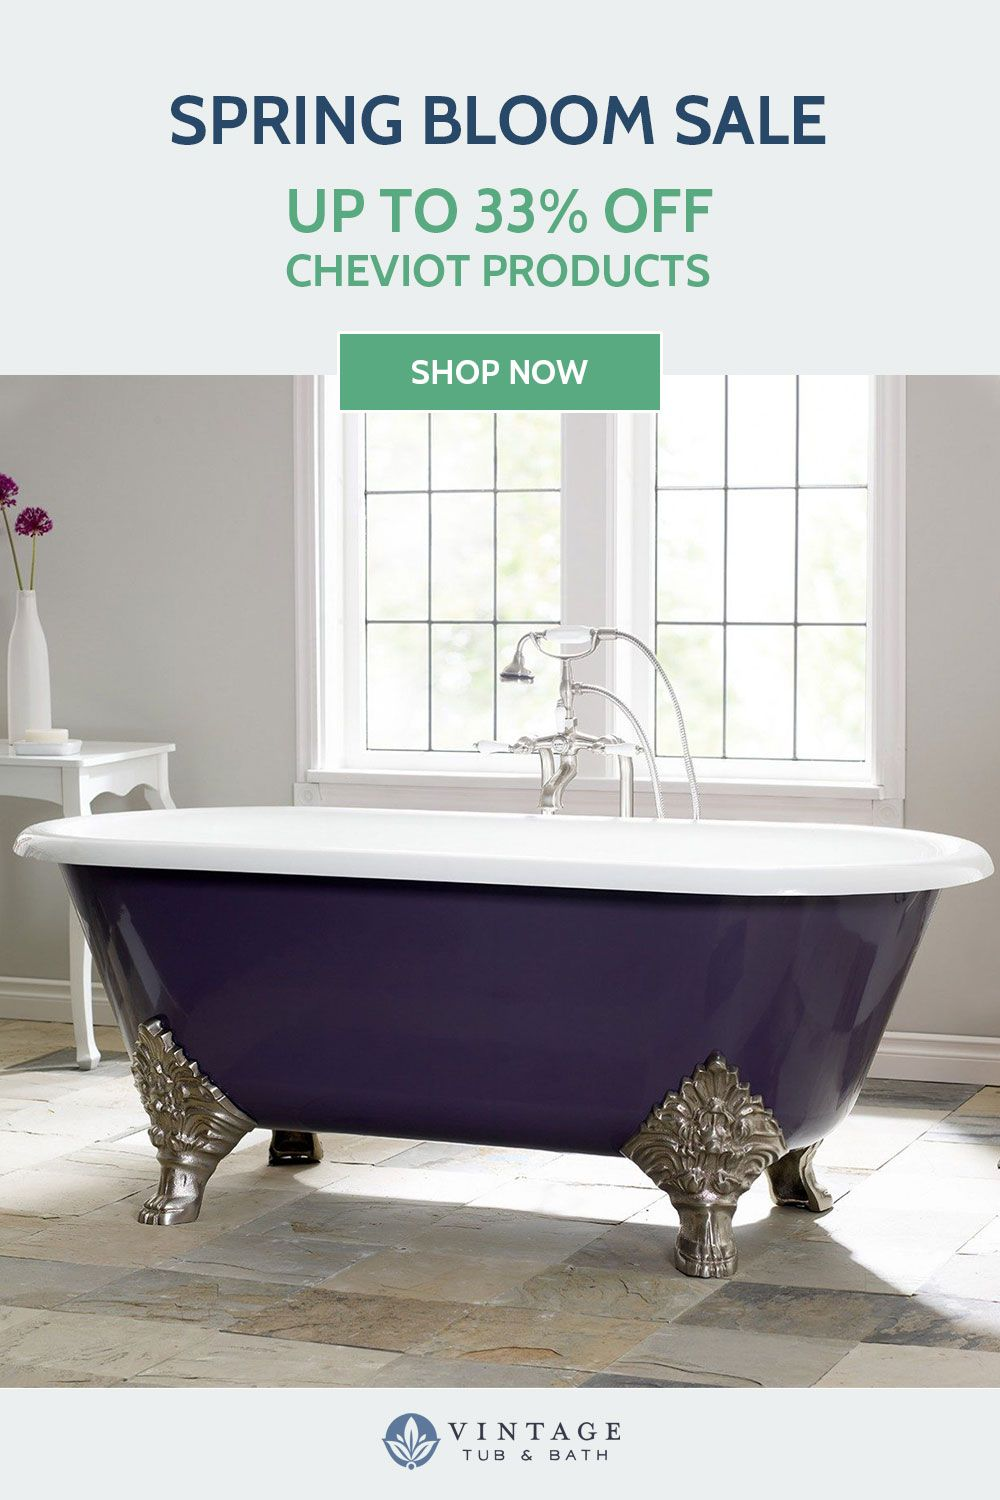 Now Through 4 30 Save Up To 33 On Cheviot Products Vintage Tub Vintage Bathrooms Classic Bathroom